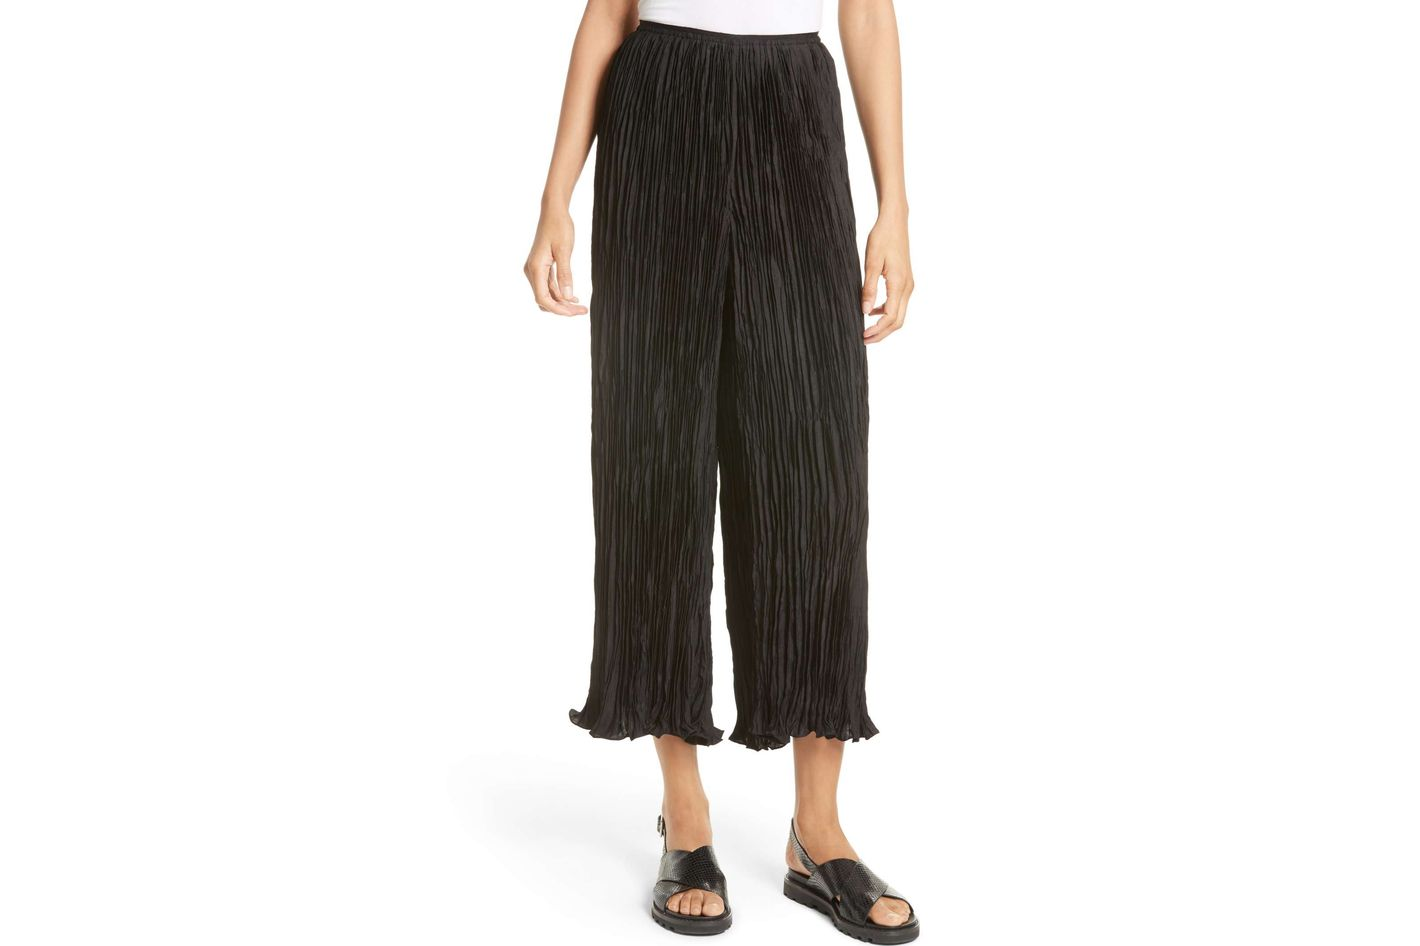 Elizabeth and James Crescent Pleated Pants